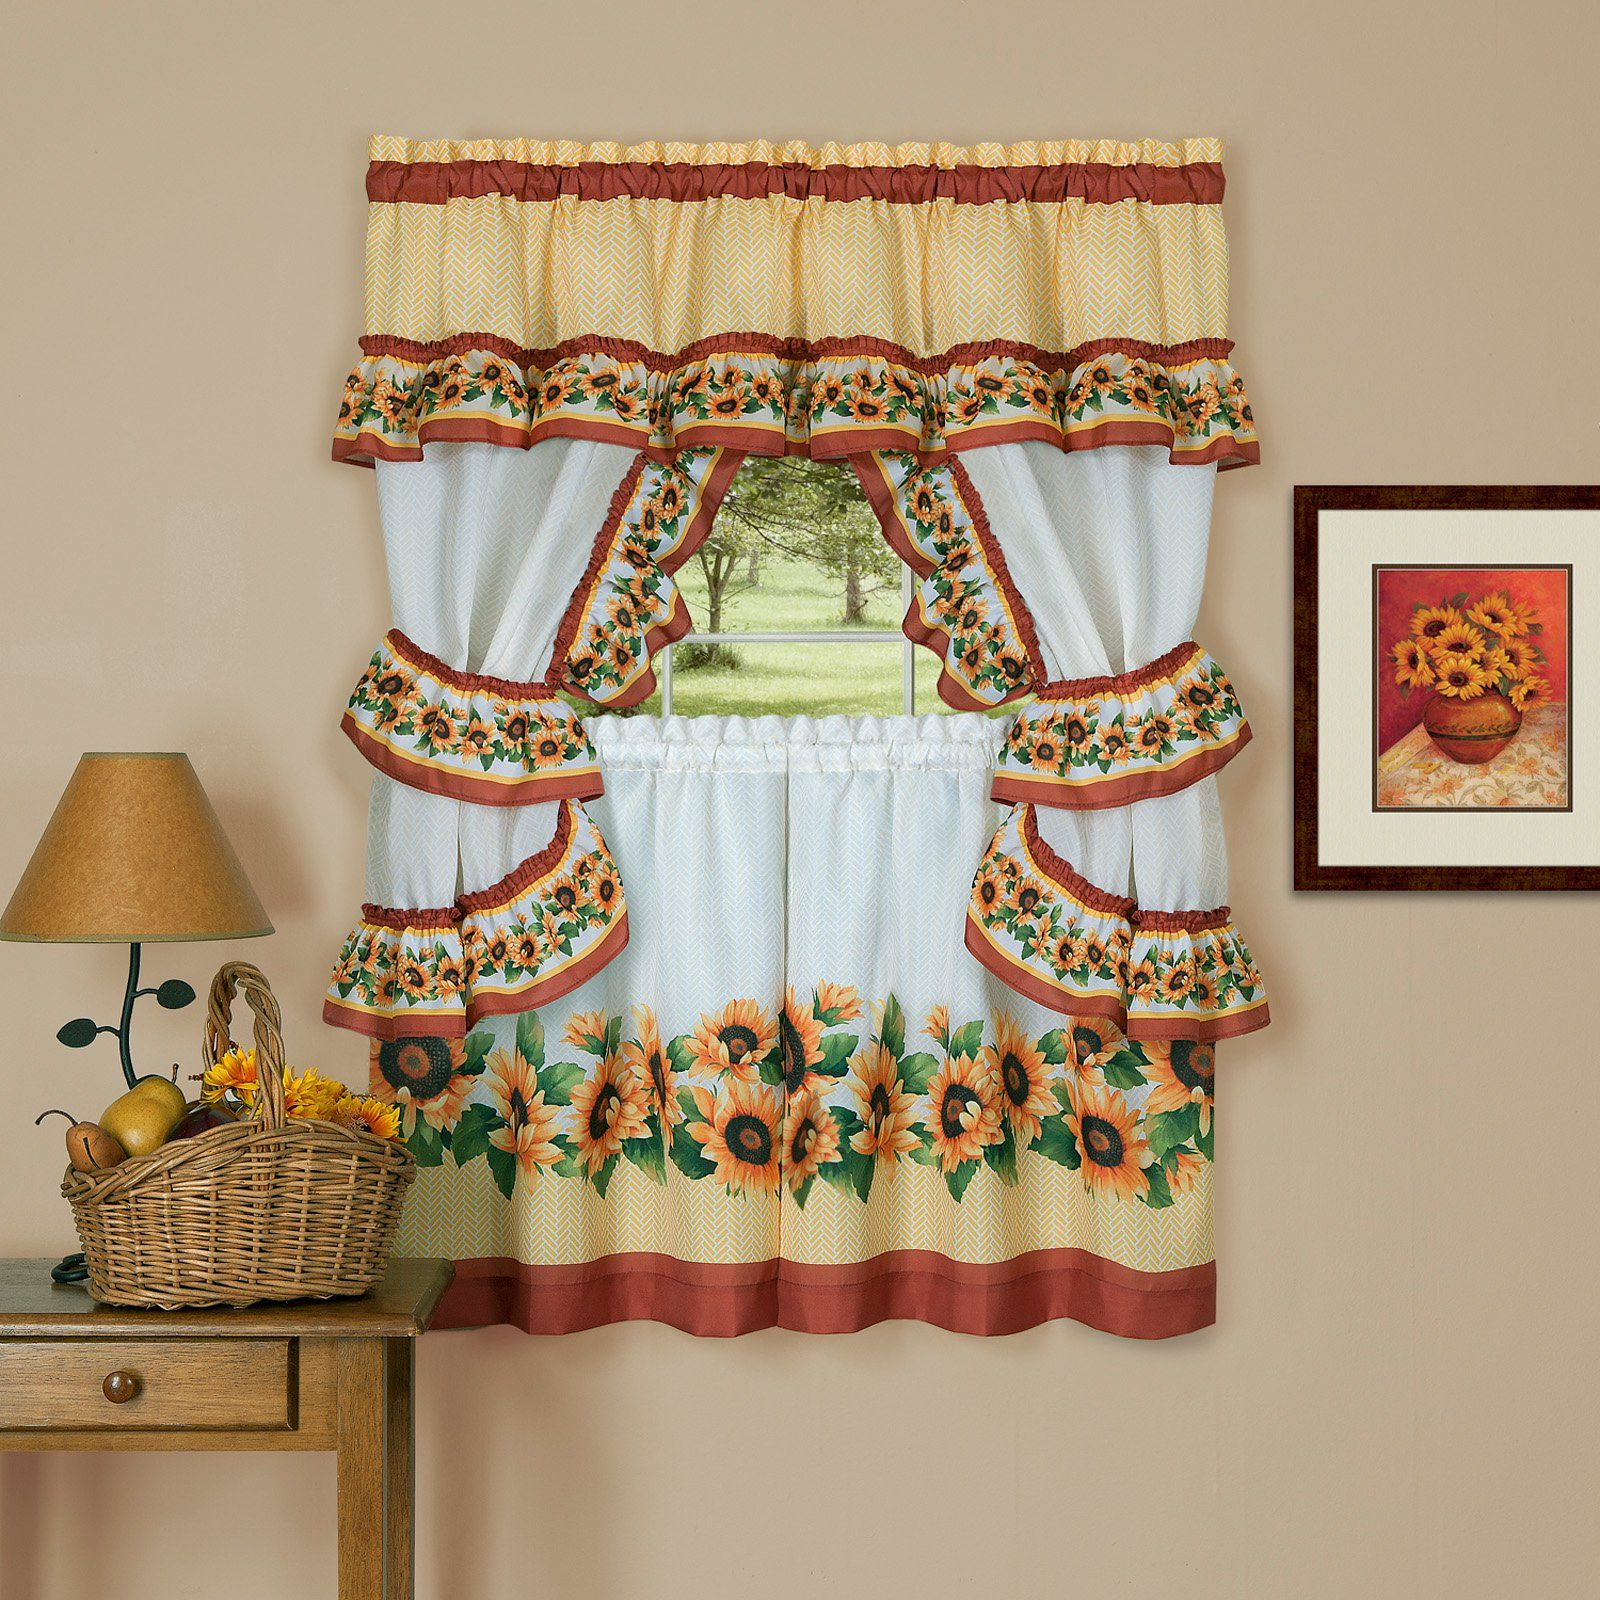 Preferred Sunflower Cottage Kitchen Curtain Tier And Valance Sets Intended For Achim Black Eyed Susan Cottage Sunflower Curtain Set (View 3 of 20)